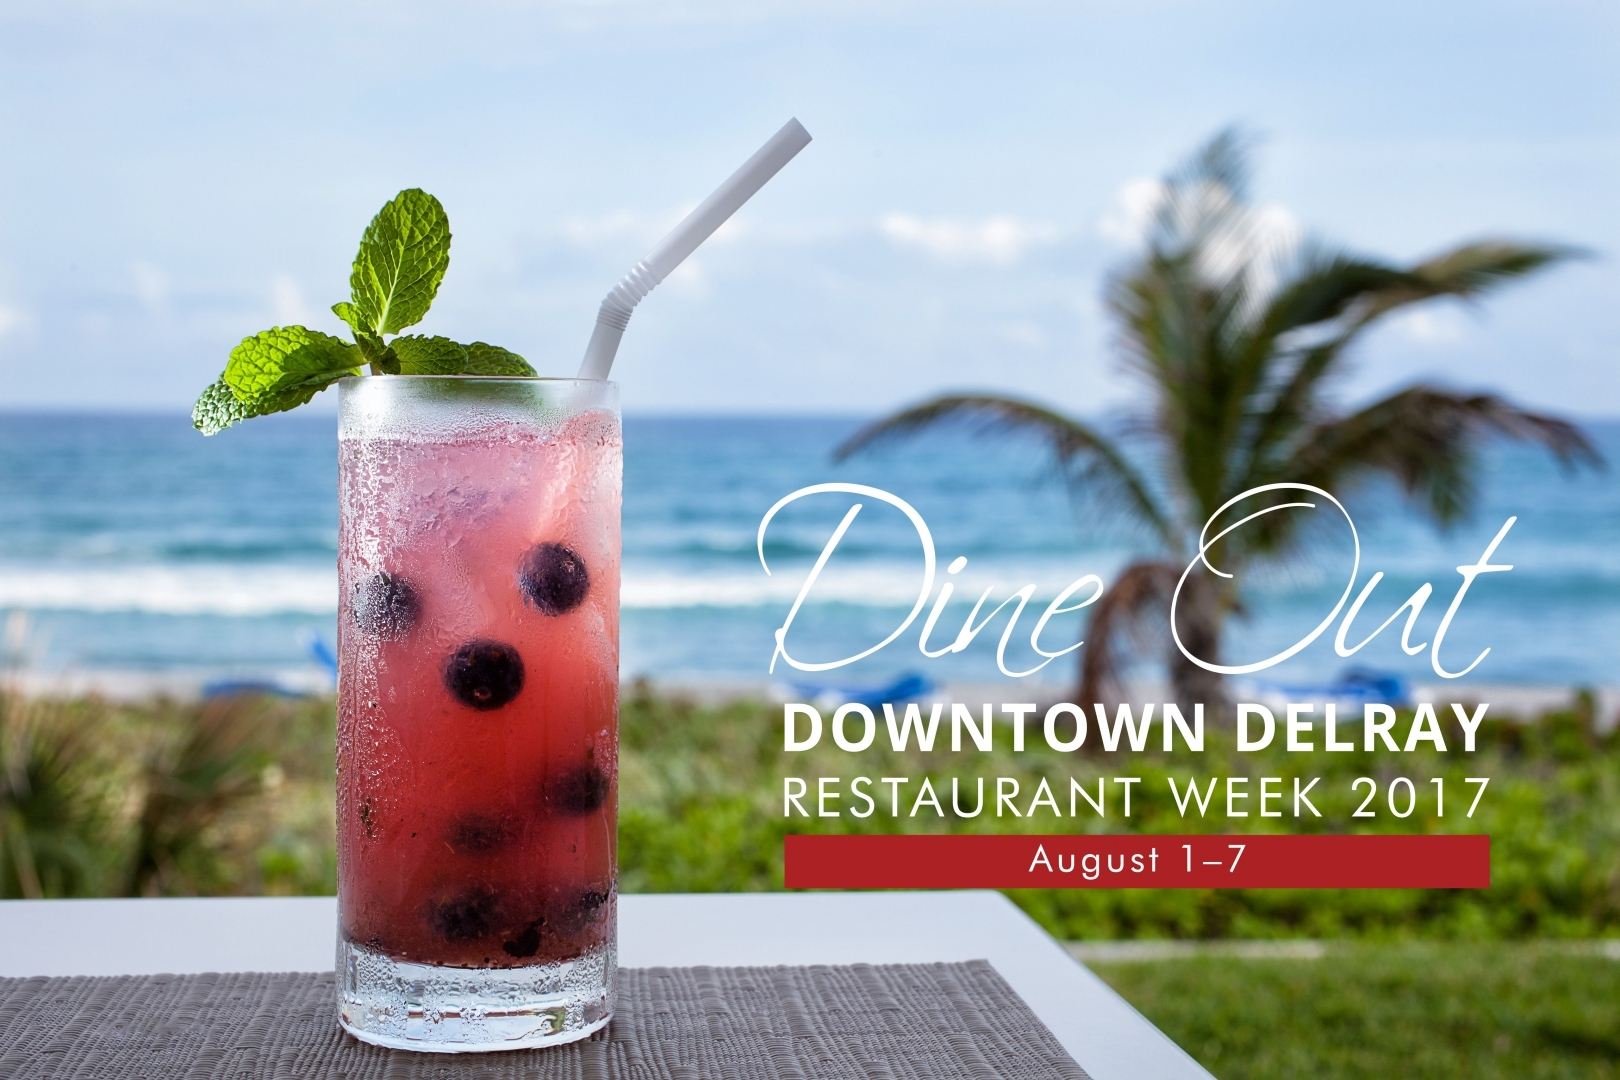 Dine Out Downtown Delray Restaurant Week 2017 Downtown